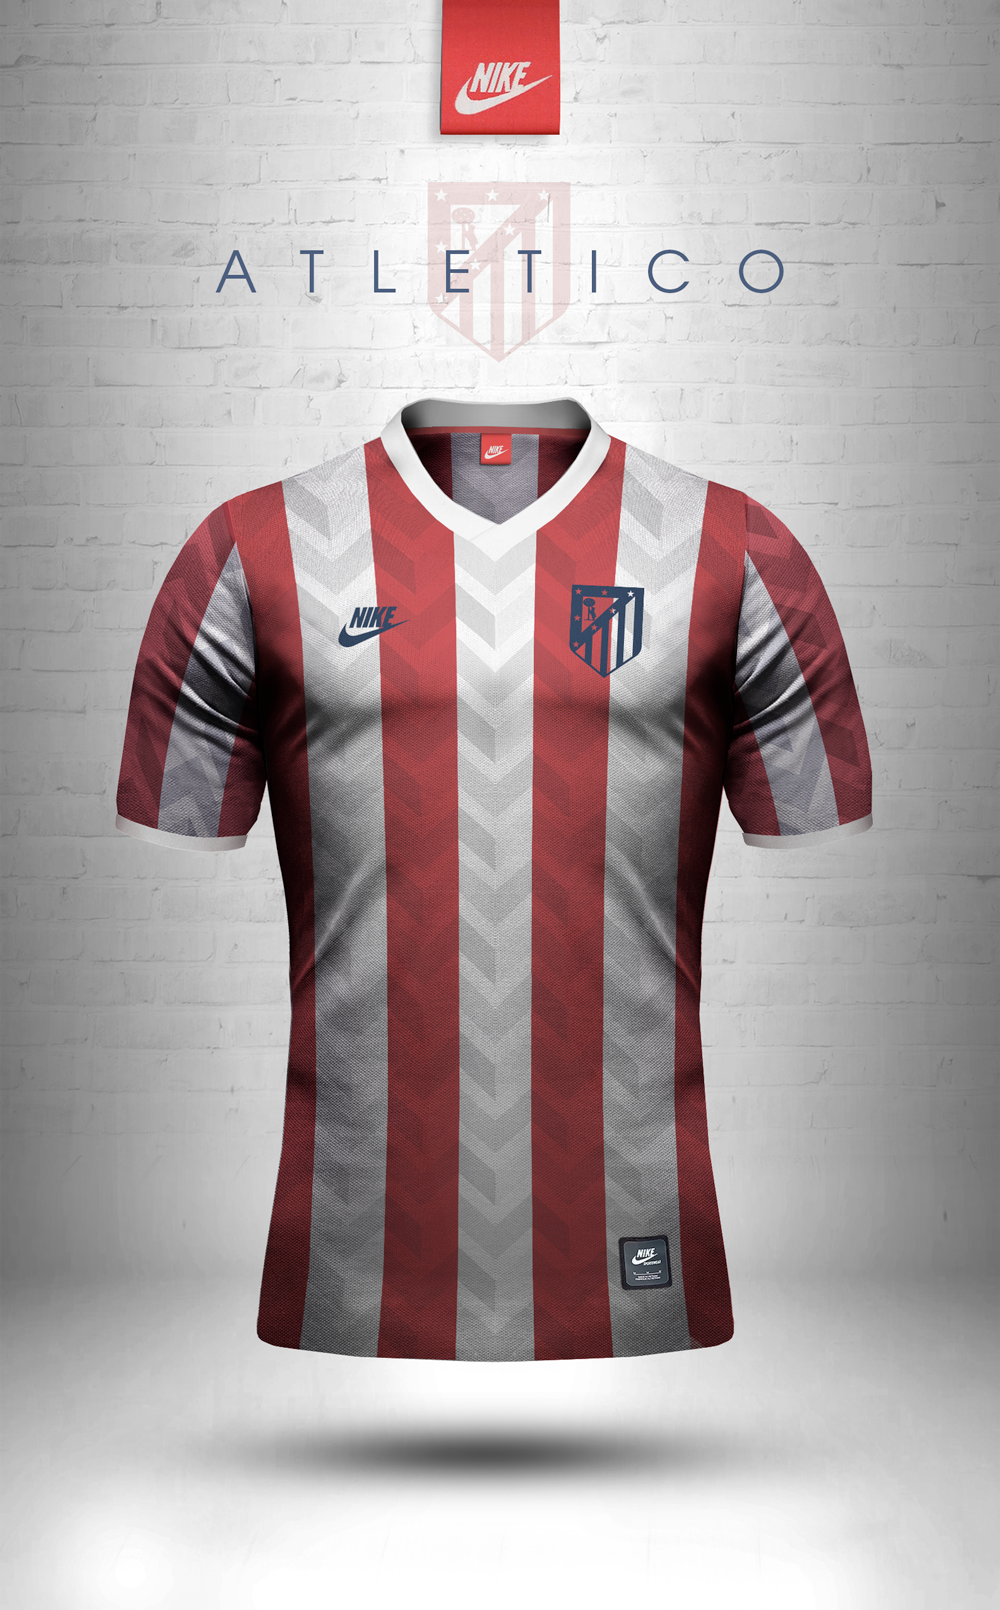 pretty nice faeee d625d Adidas Originals and Nike Sportswear jersey design concepts using geometric  patterns.